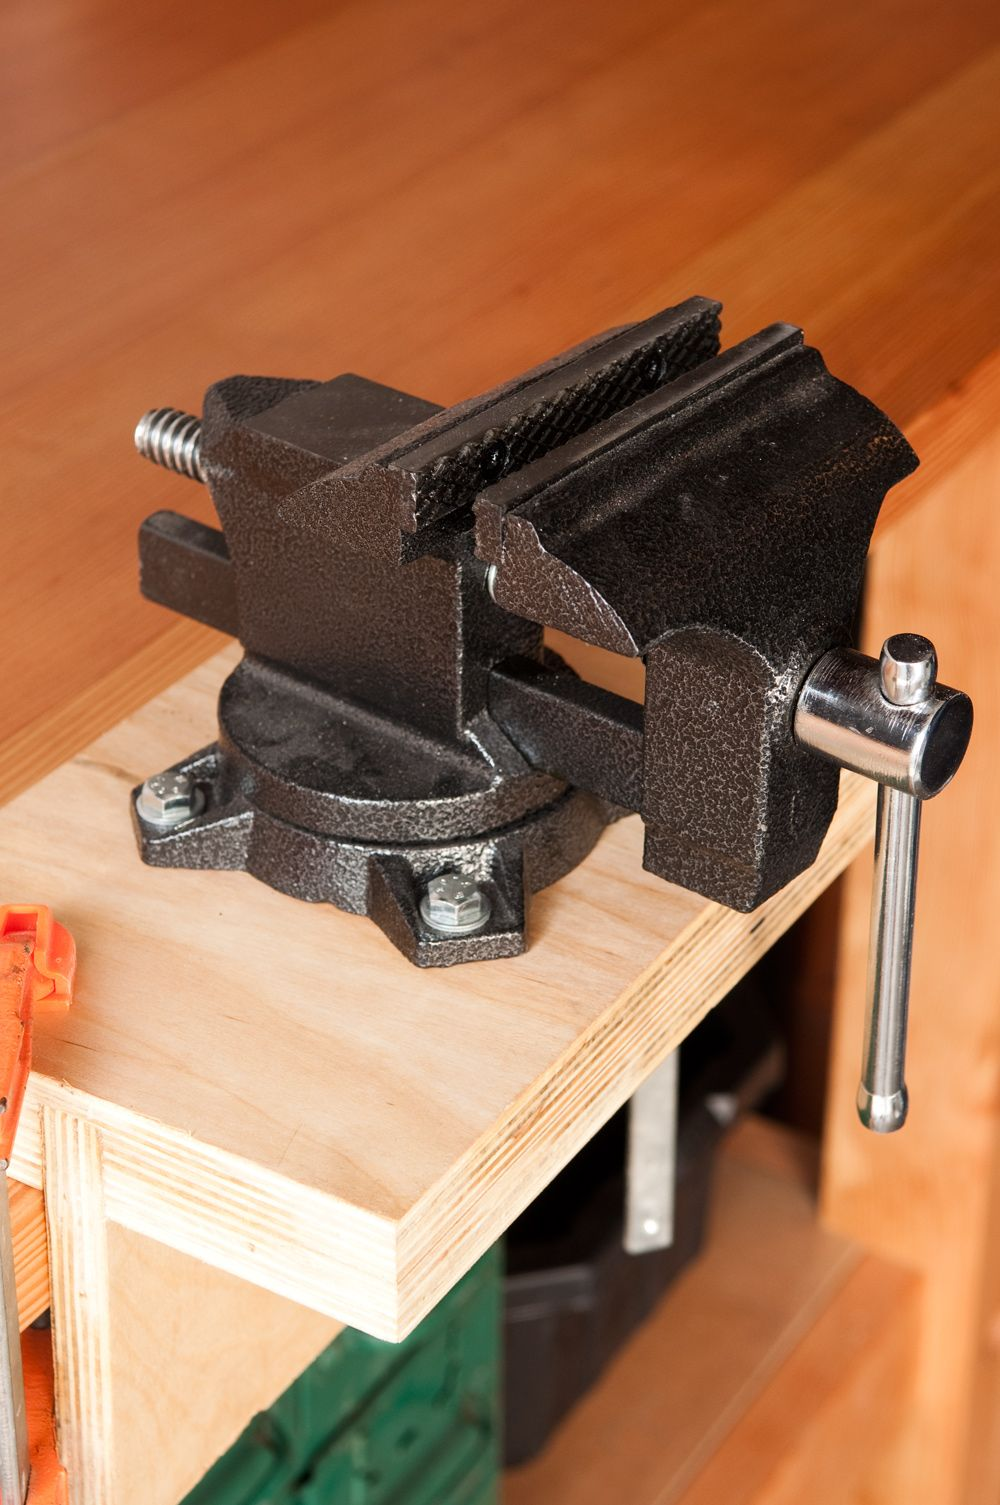 Sensational How To Install And Mount A Vise Without Drilling Holes In Alphanode Cool Chair Designs And Ideas Alphanodeonline